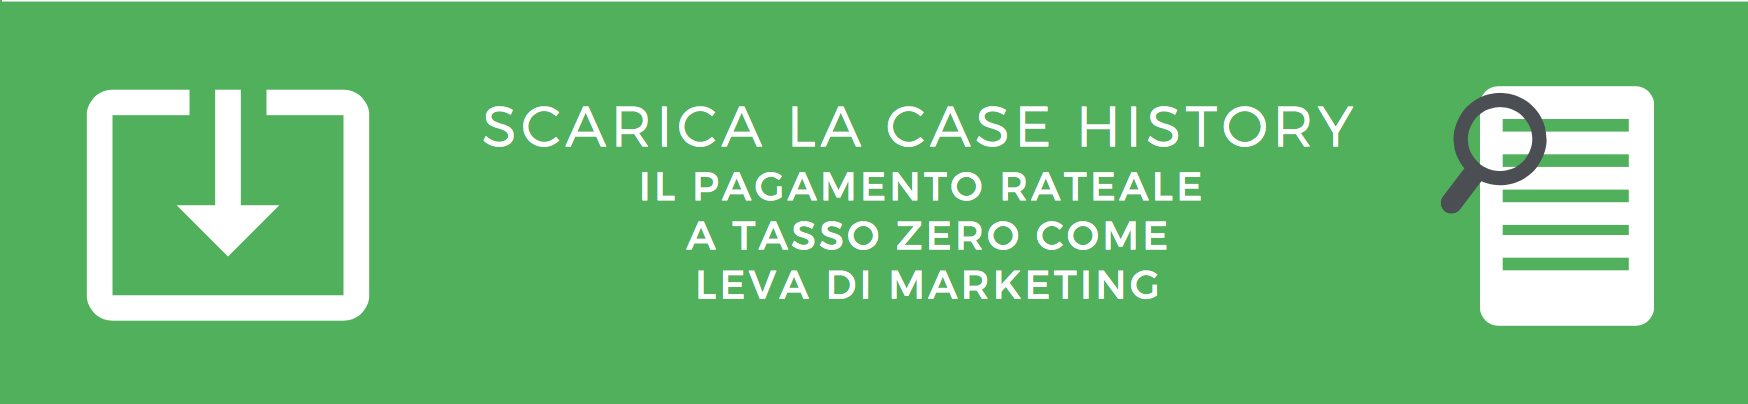 Tasso zero: il pagamento rateale come leva di marketing